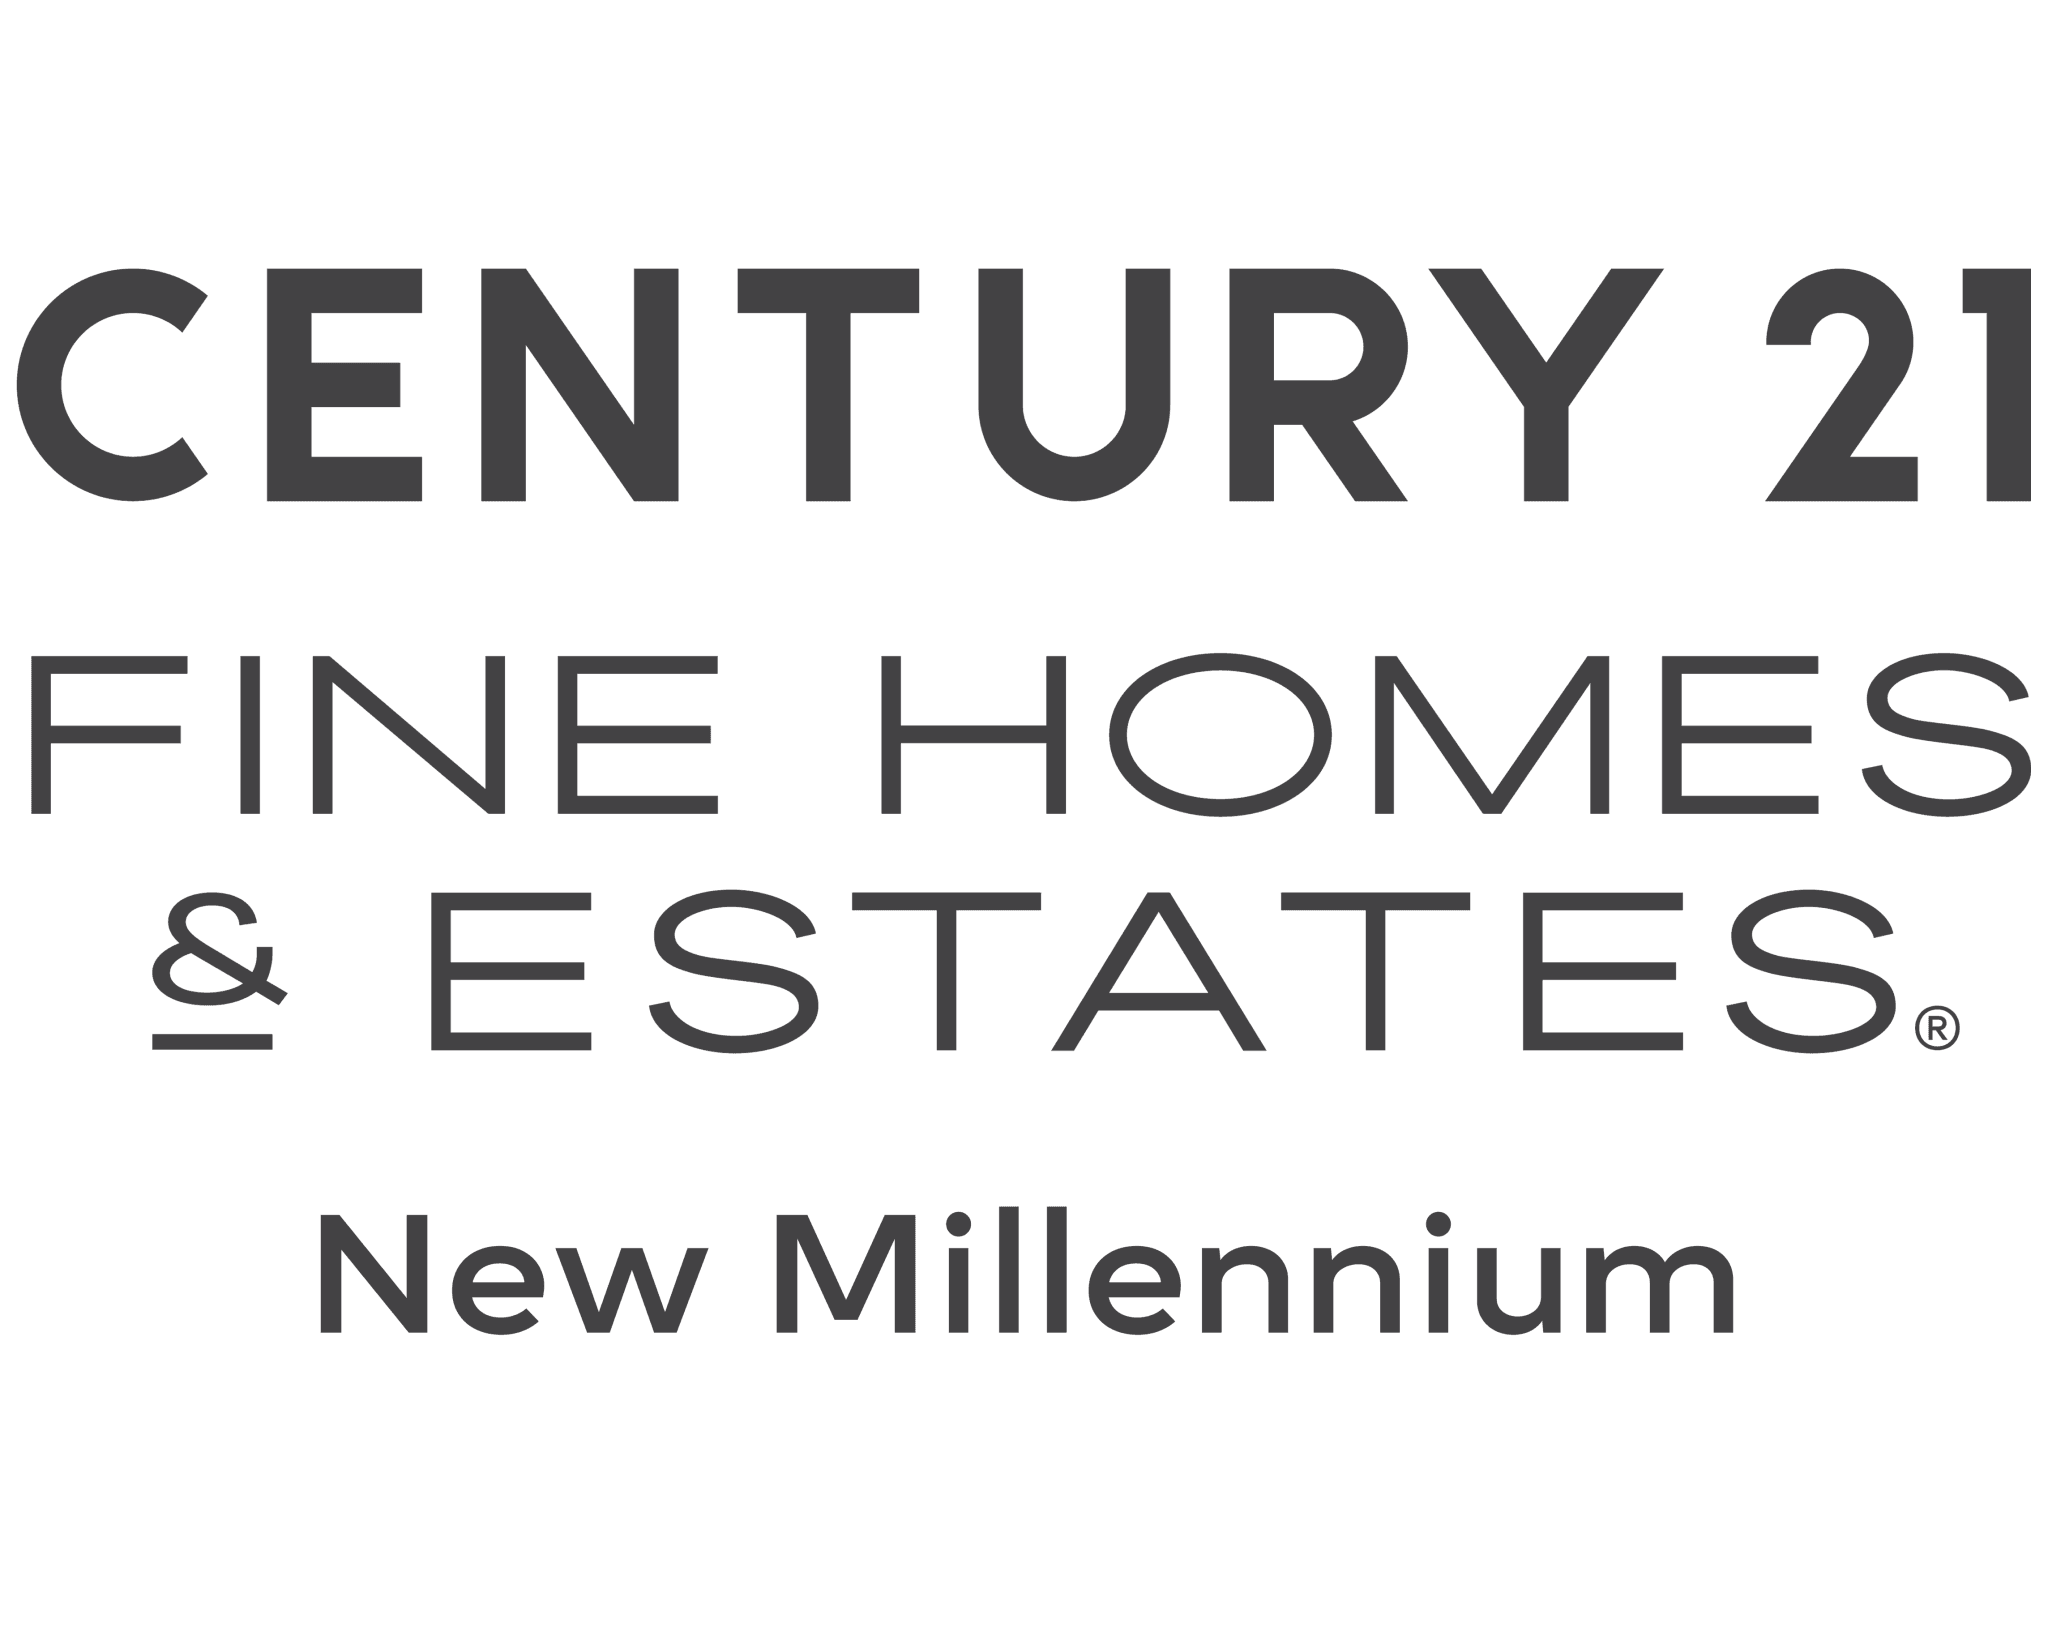 Fine Homes & Estates DBA Gray Center